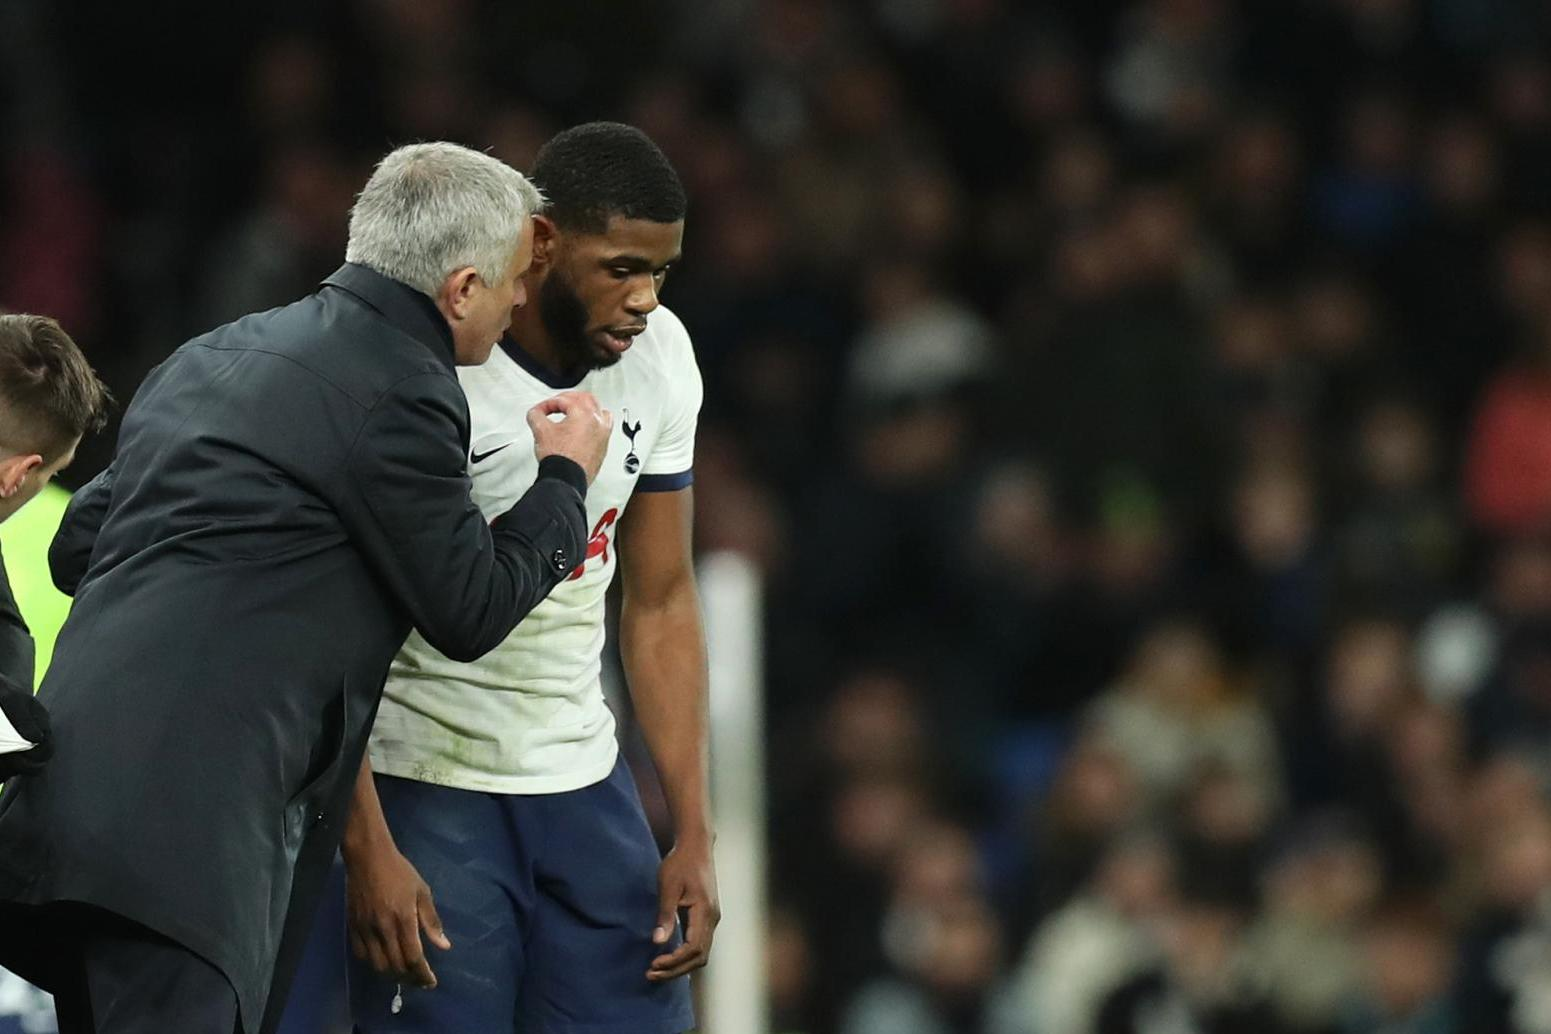 Tottenham boss Mourinho deserves more credit for developing young players - Tanganga - Bóng Đá